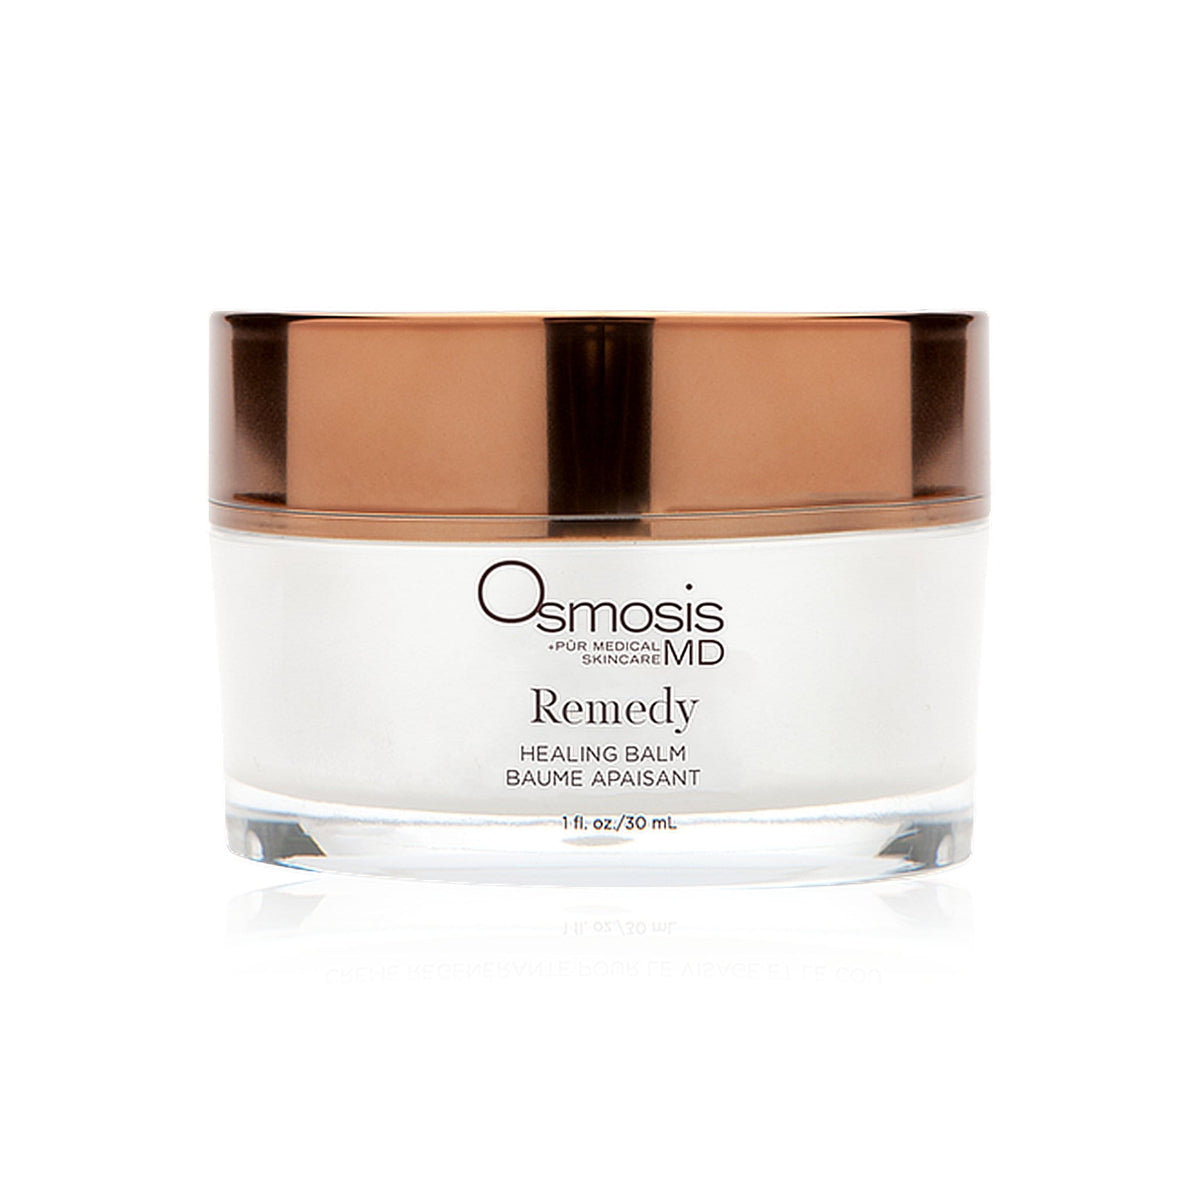 OSMOSIS MD - REMEDY - Beauty Nook